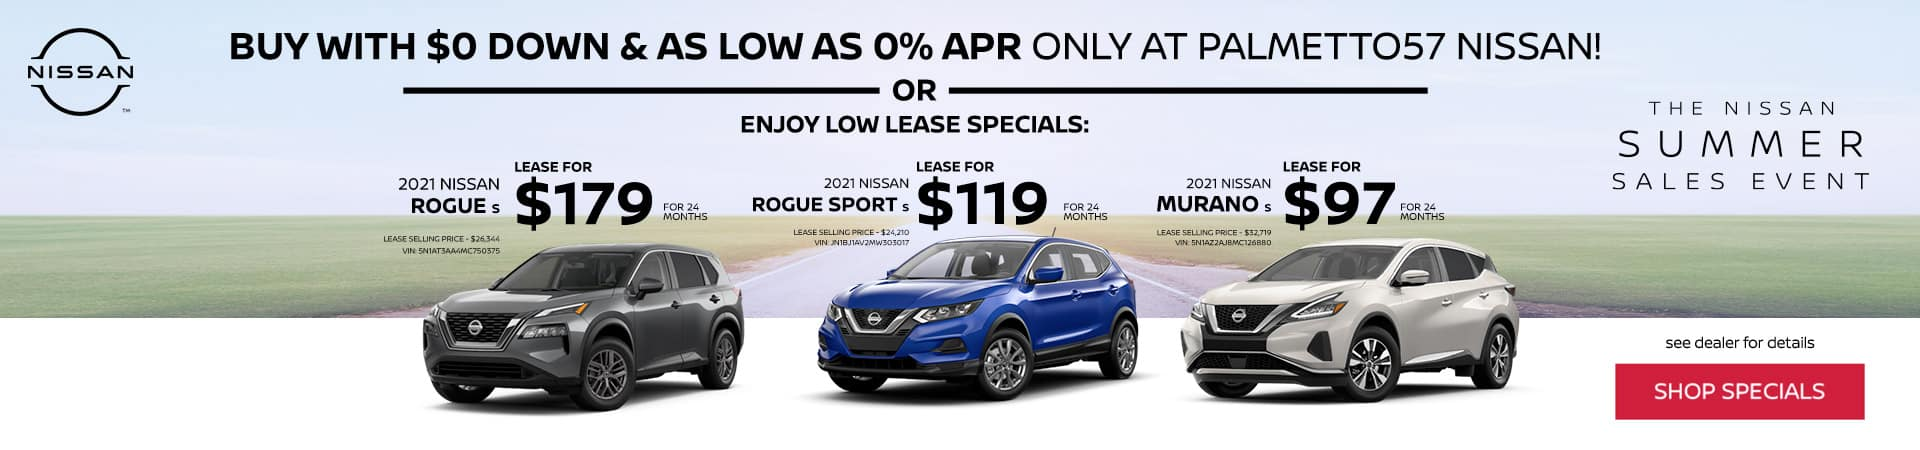 Lease Specials for Nissan Rogue, Rogue Sport, and Murano